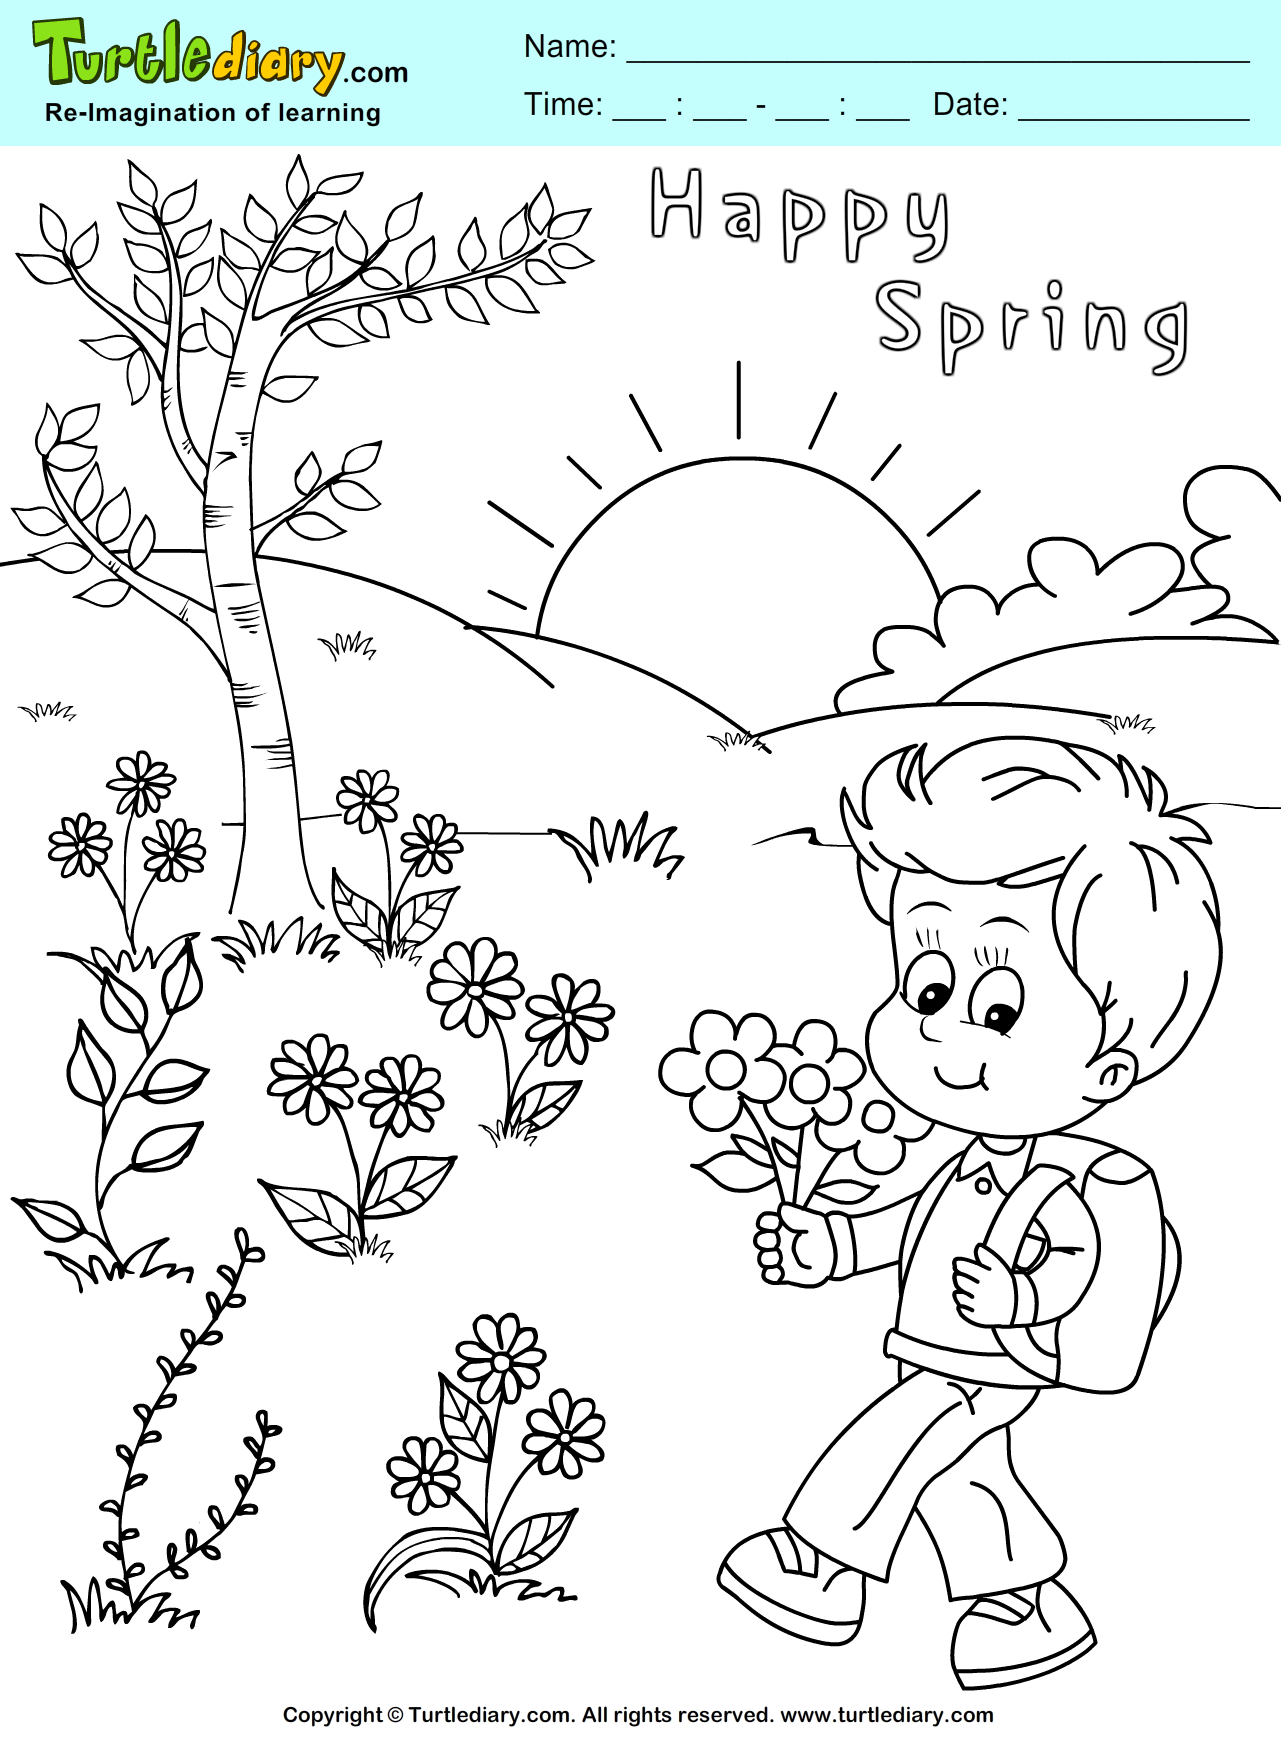 Spring Coloring Page Coloring Sheet Spring Coloring Pages Coloring Pages For Kids Coloring Pages